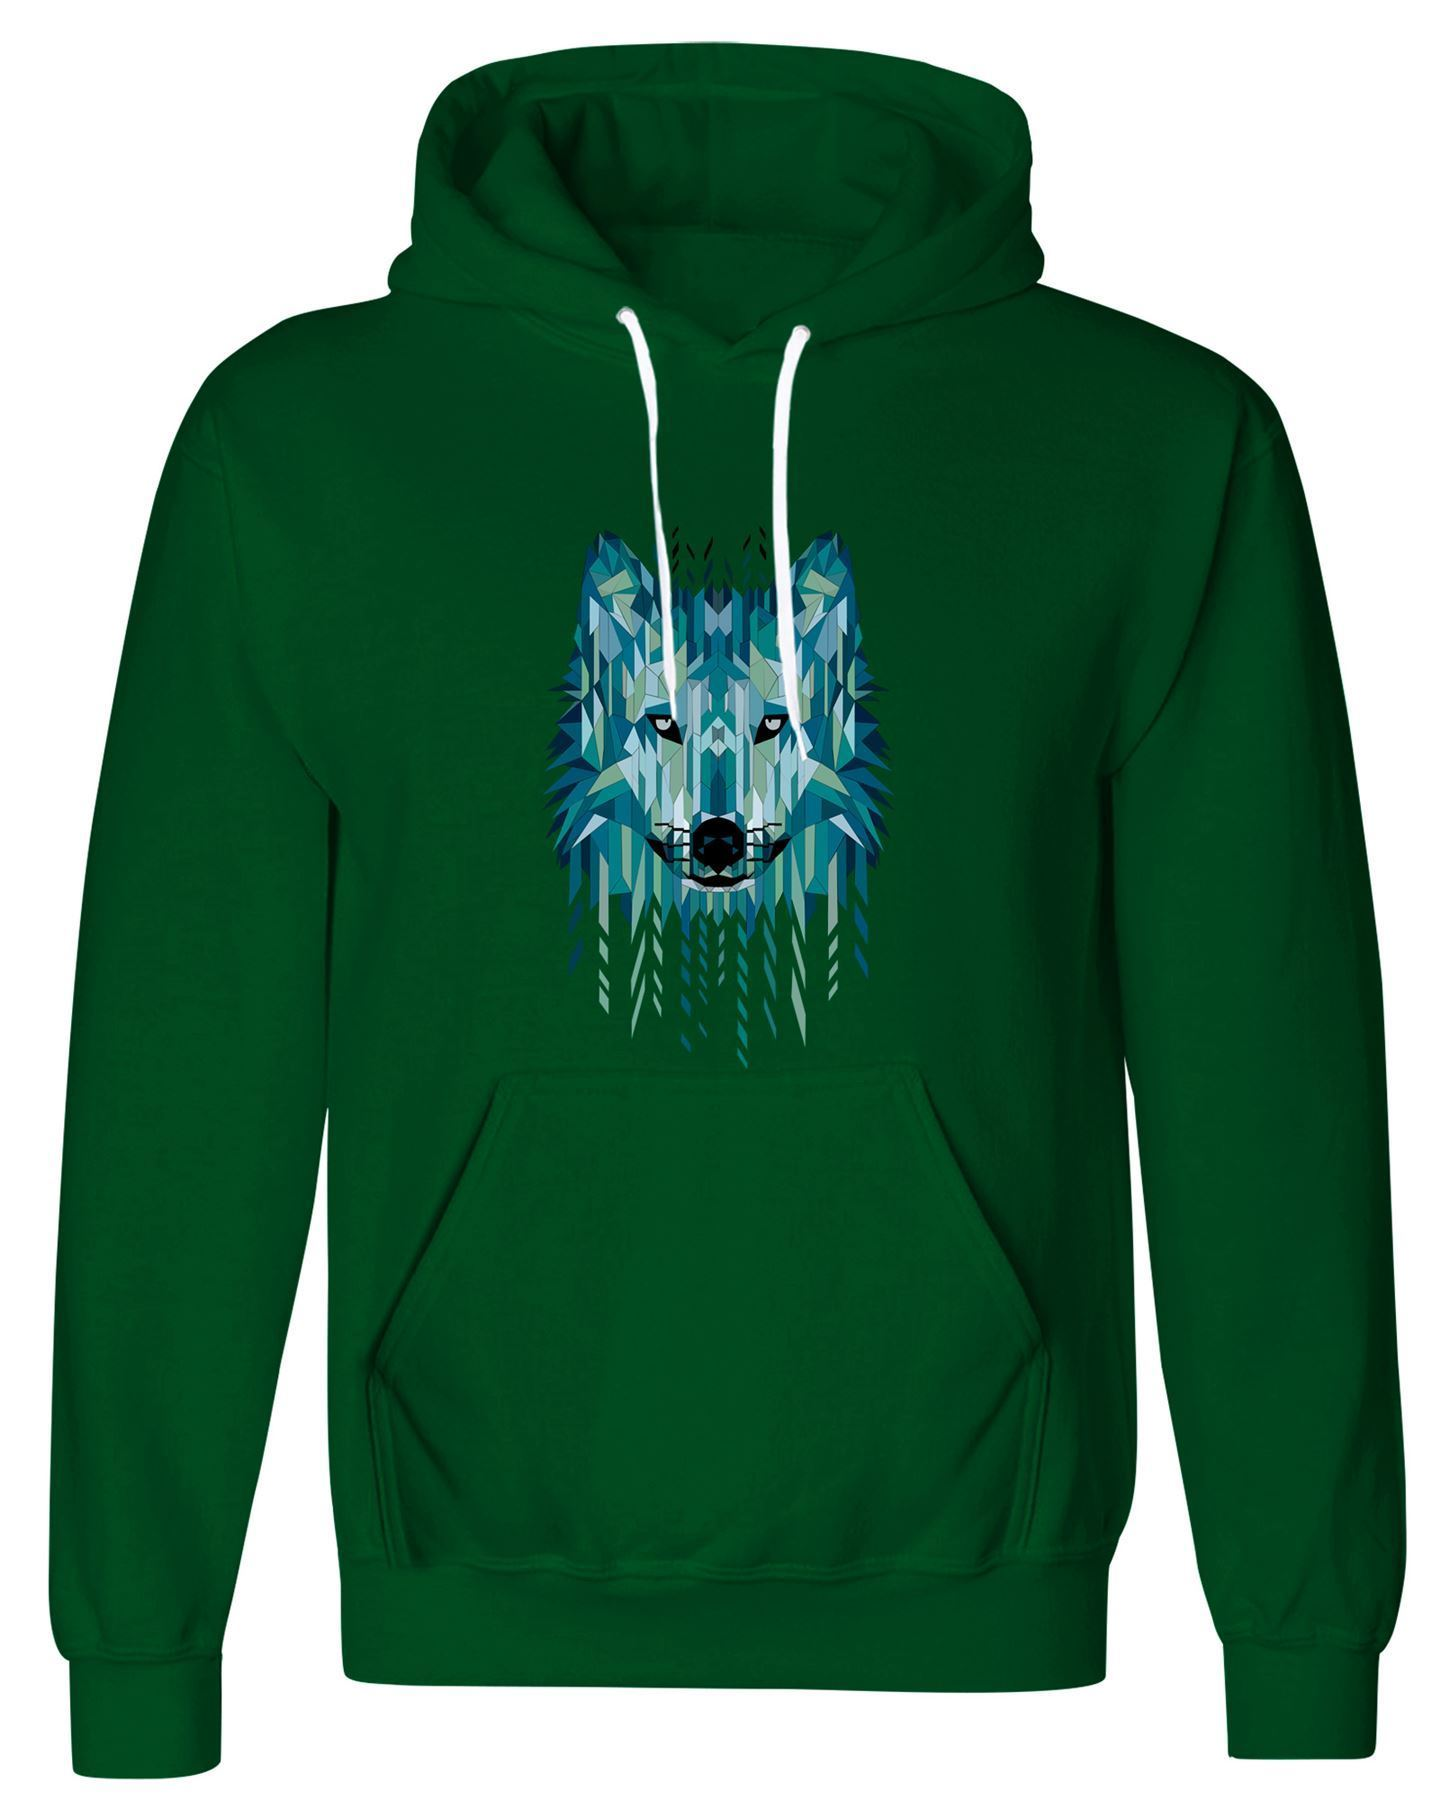 Geometrical design wolf printed pullover fleece hoodie sweatshirt lot